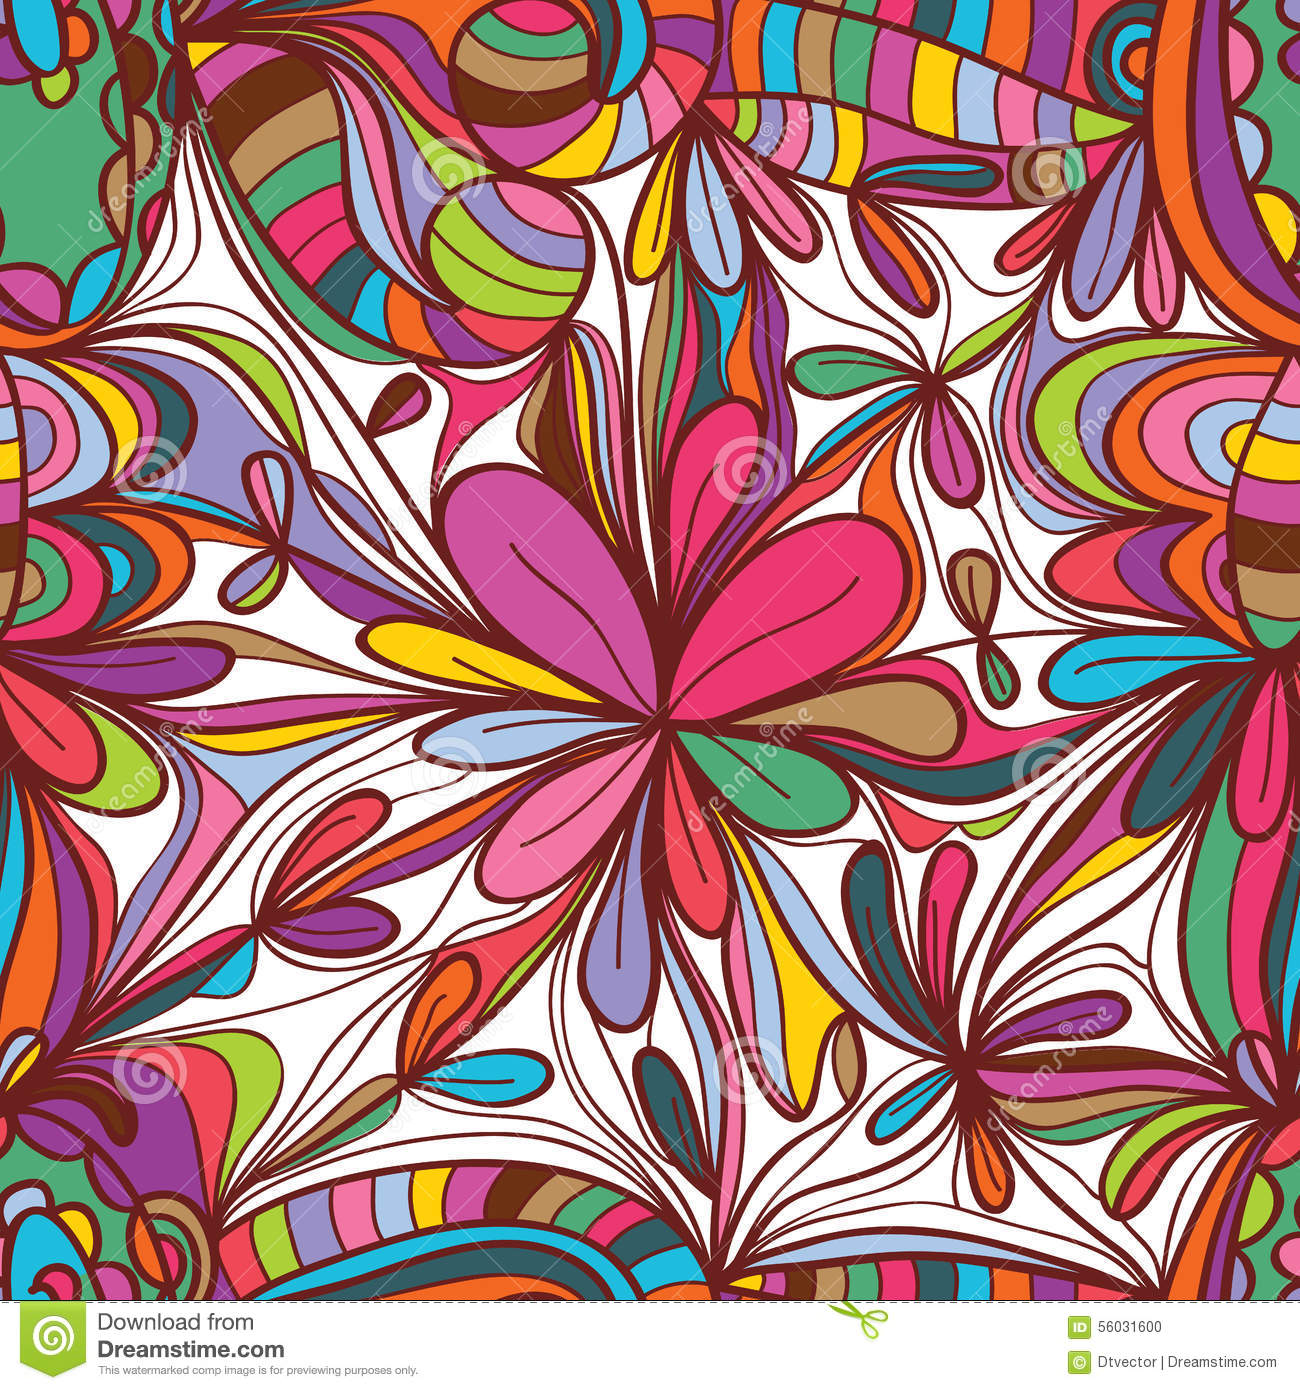 Flower drawing square seamless pattern